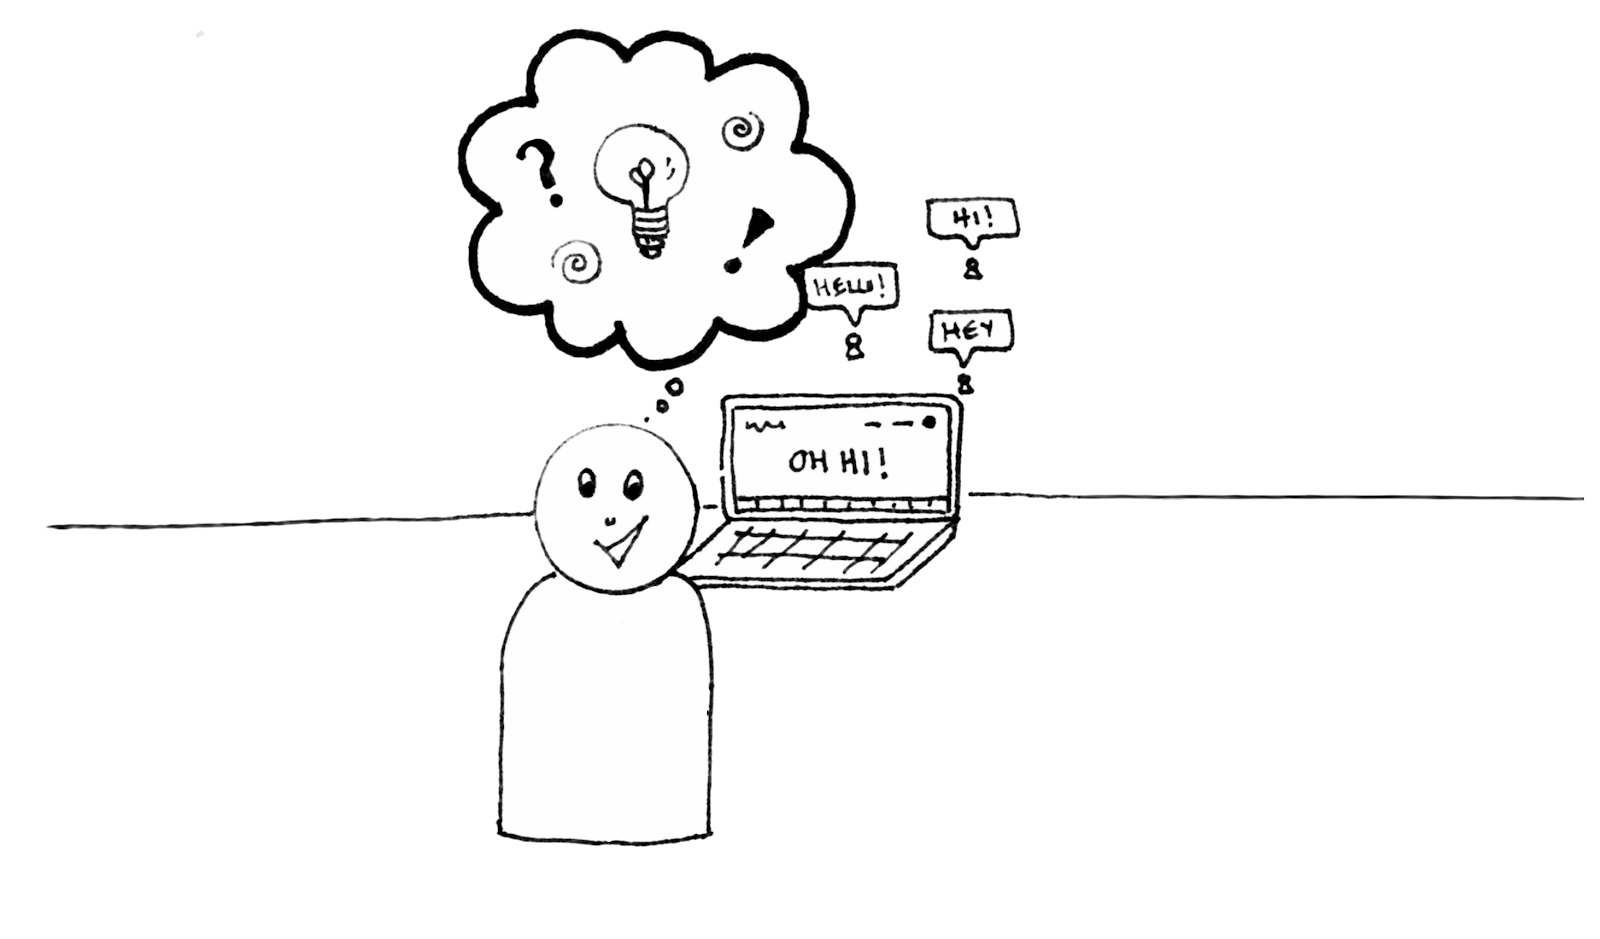 A hand drawn weeble person representing the author looks happily lost in thought about her ideas and potential while a laptop behind her shows messages of welcome from across the internet.